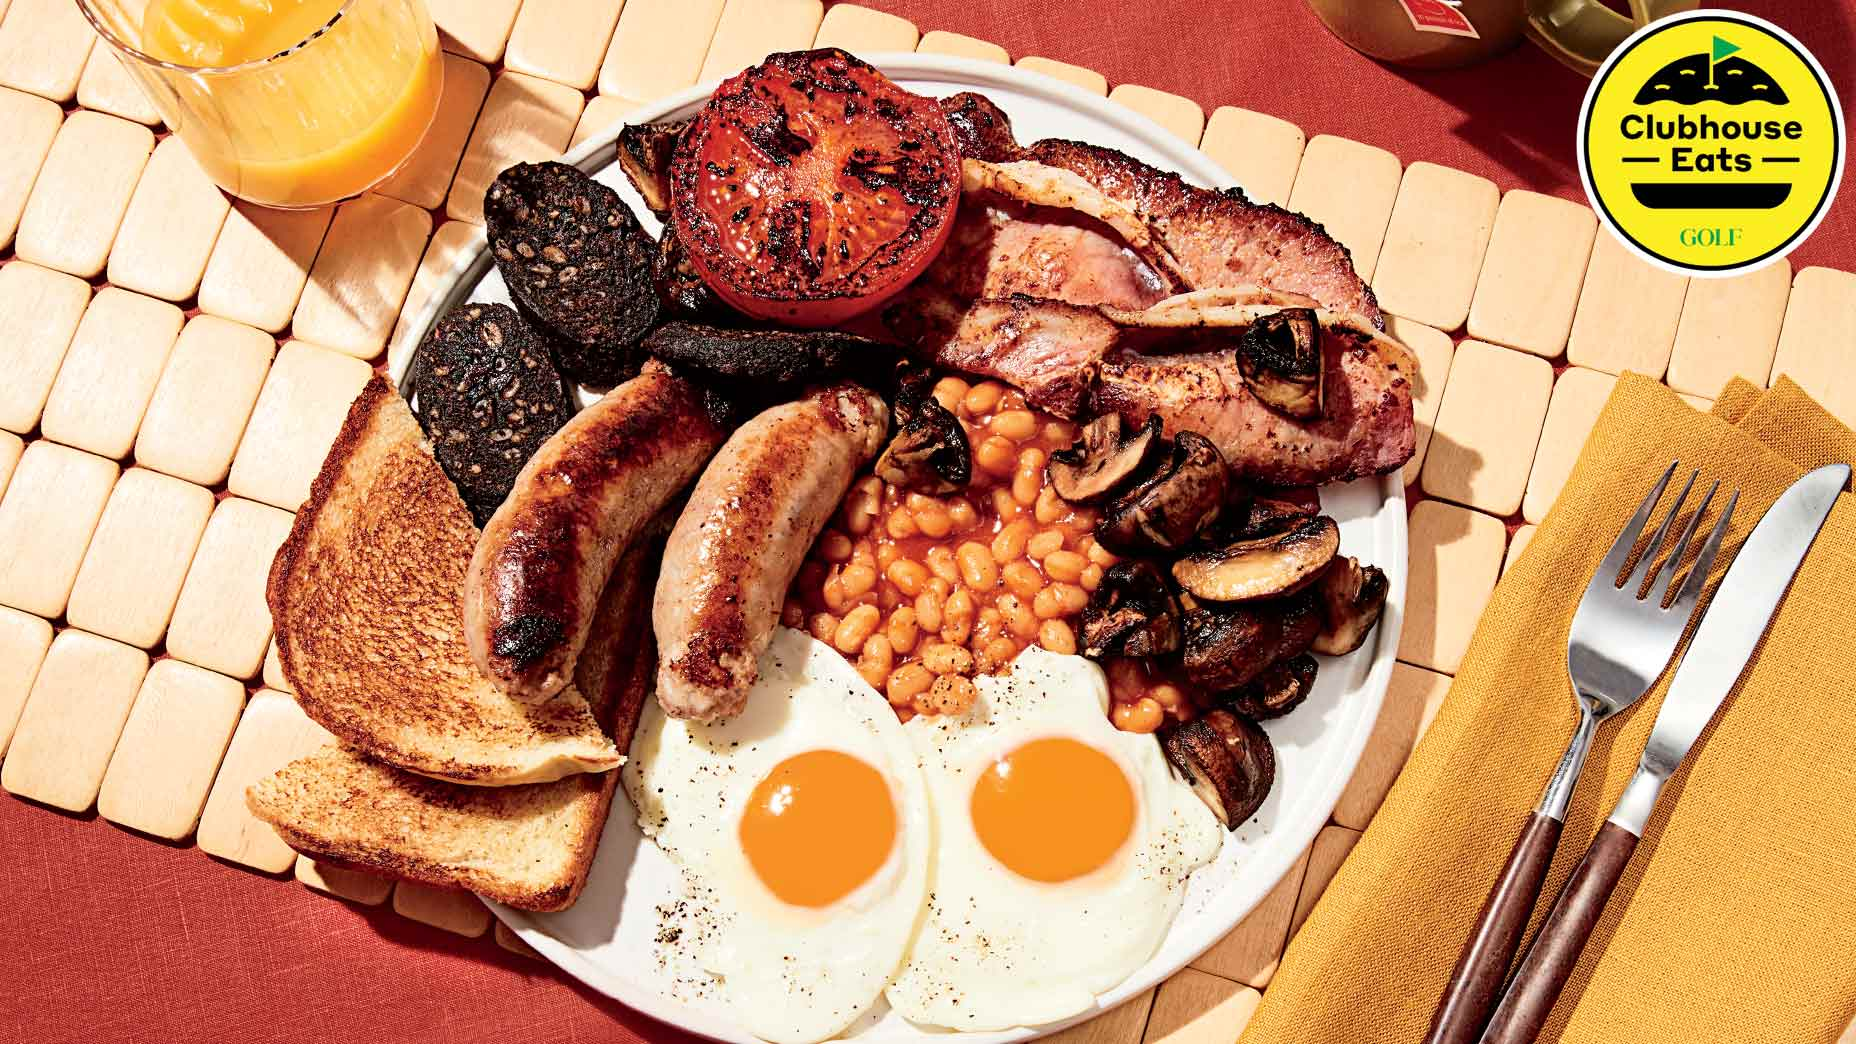 The English Fry Up at Royal St. George's.